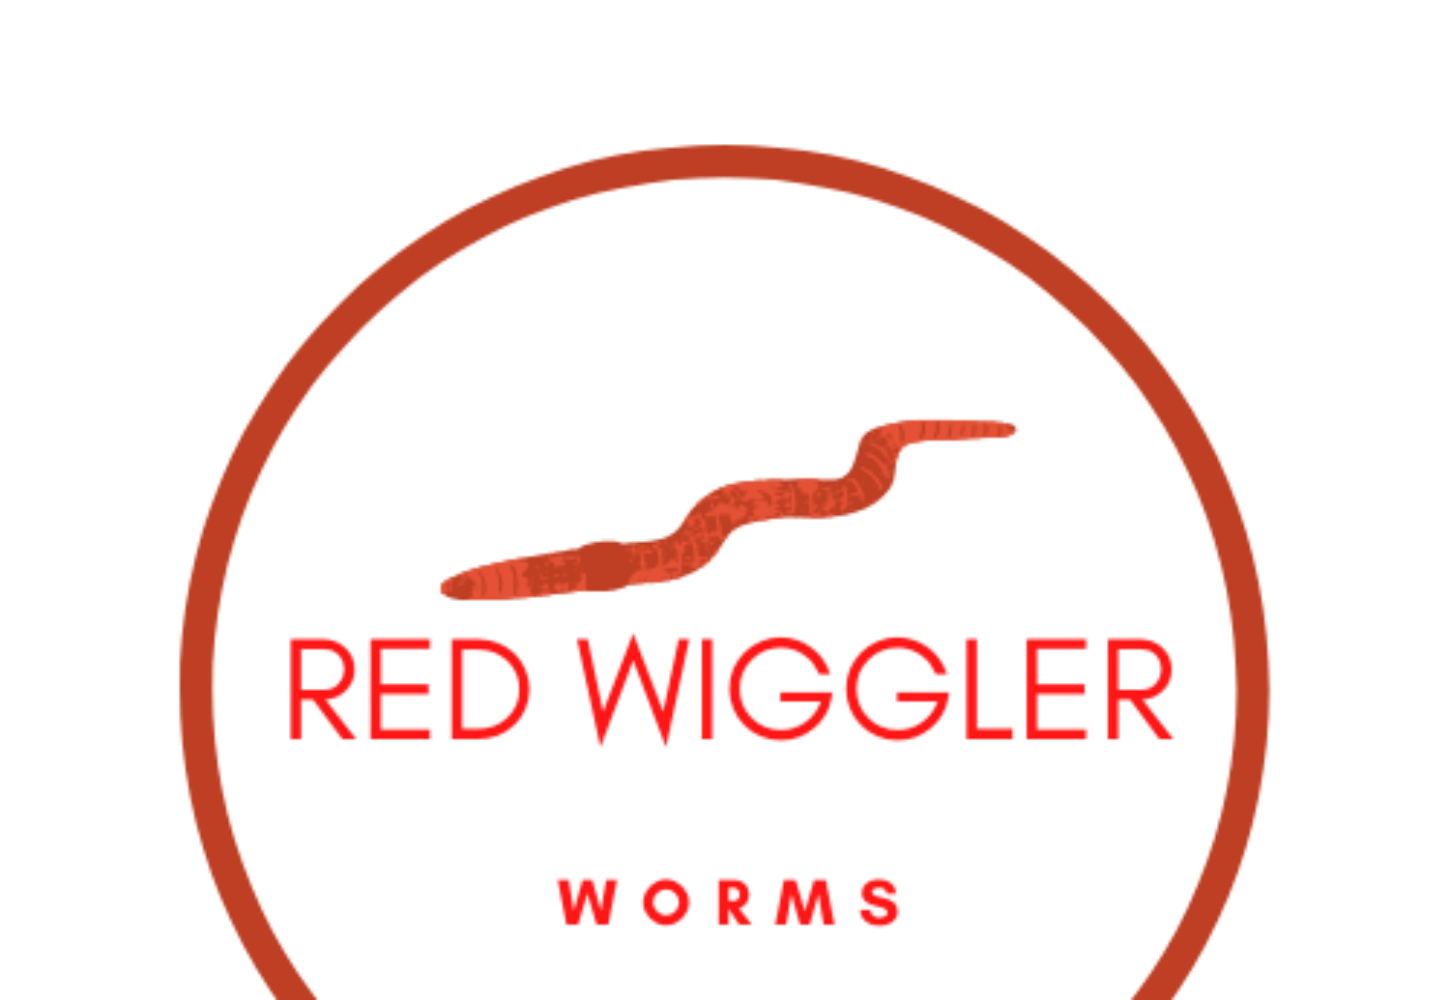 WHY WE USE RED WIGGLER WORMS?